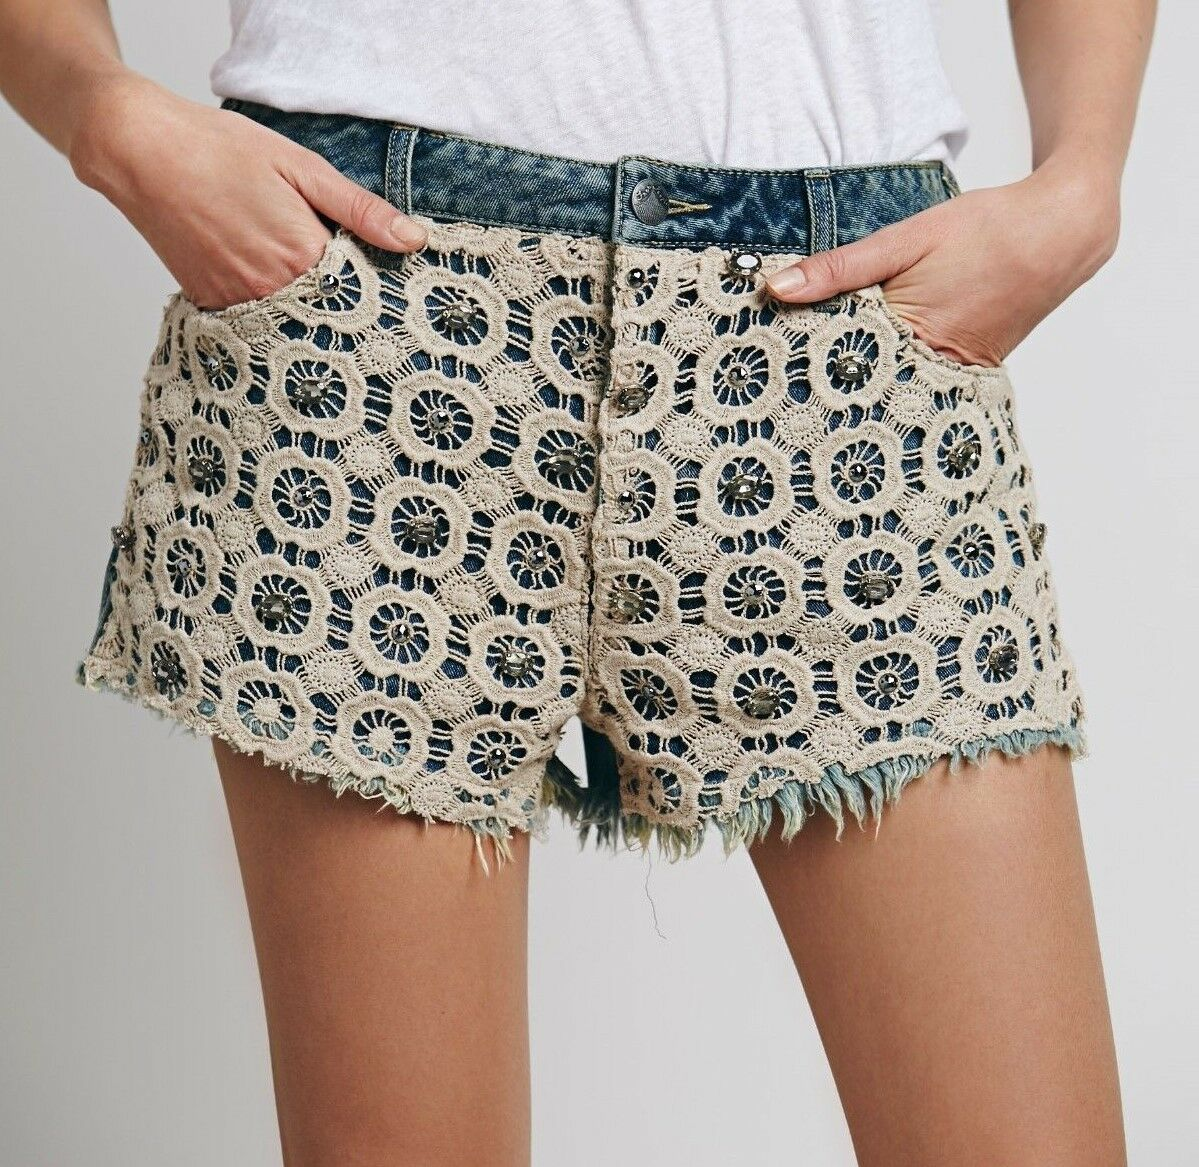 NWT Free People 27 Denim Shorts PANTS Distressed Cut Offs bluee  68 RV Lace Gems